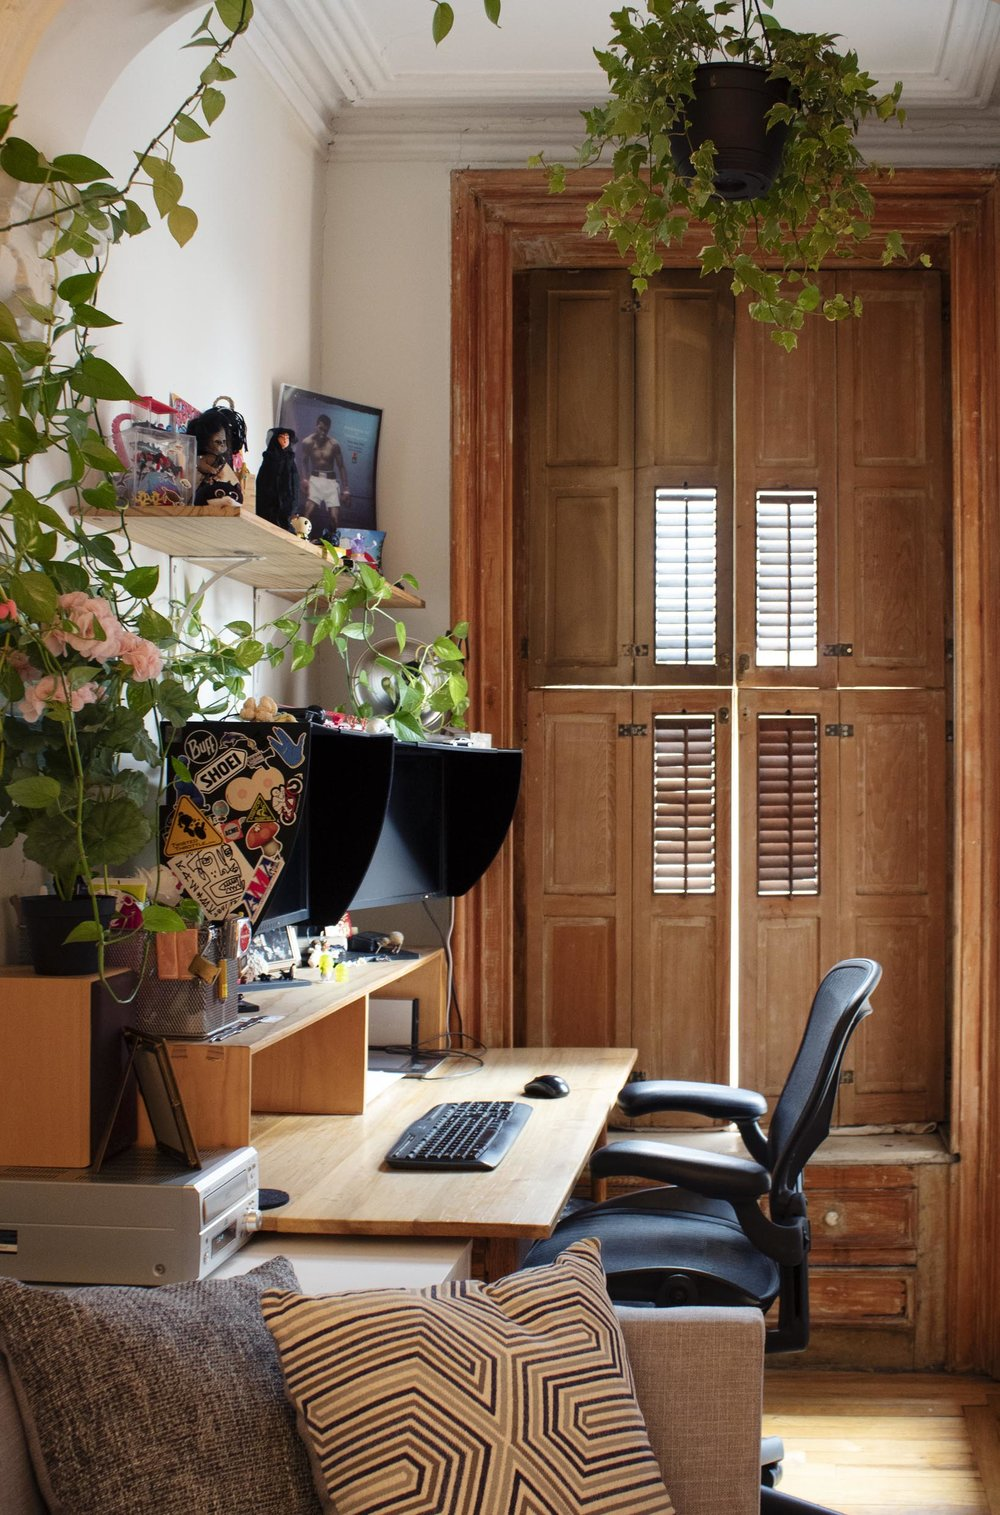 Juan's office in a nook at the front of the building, with original wooden shutters and built-in drawers below.